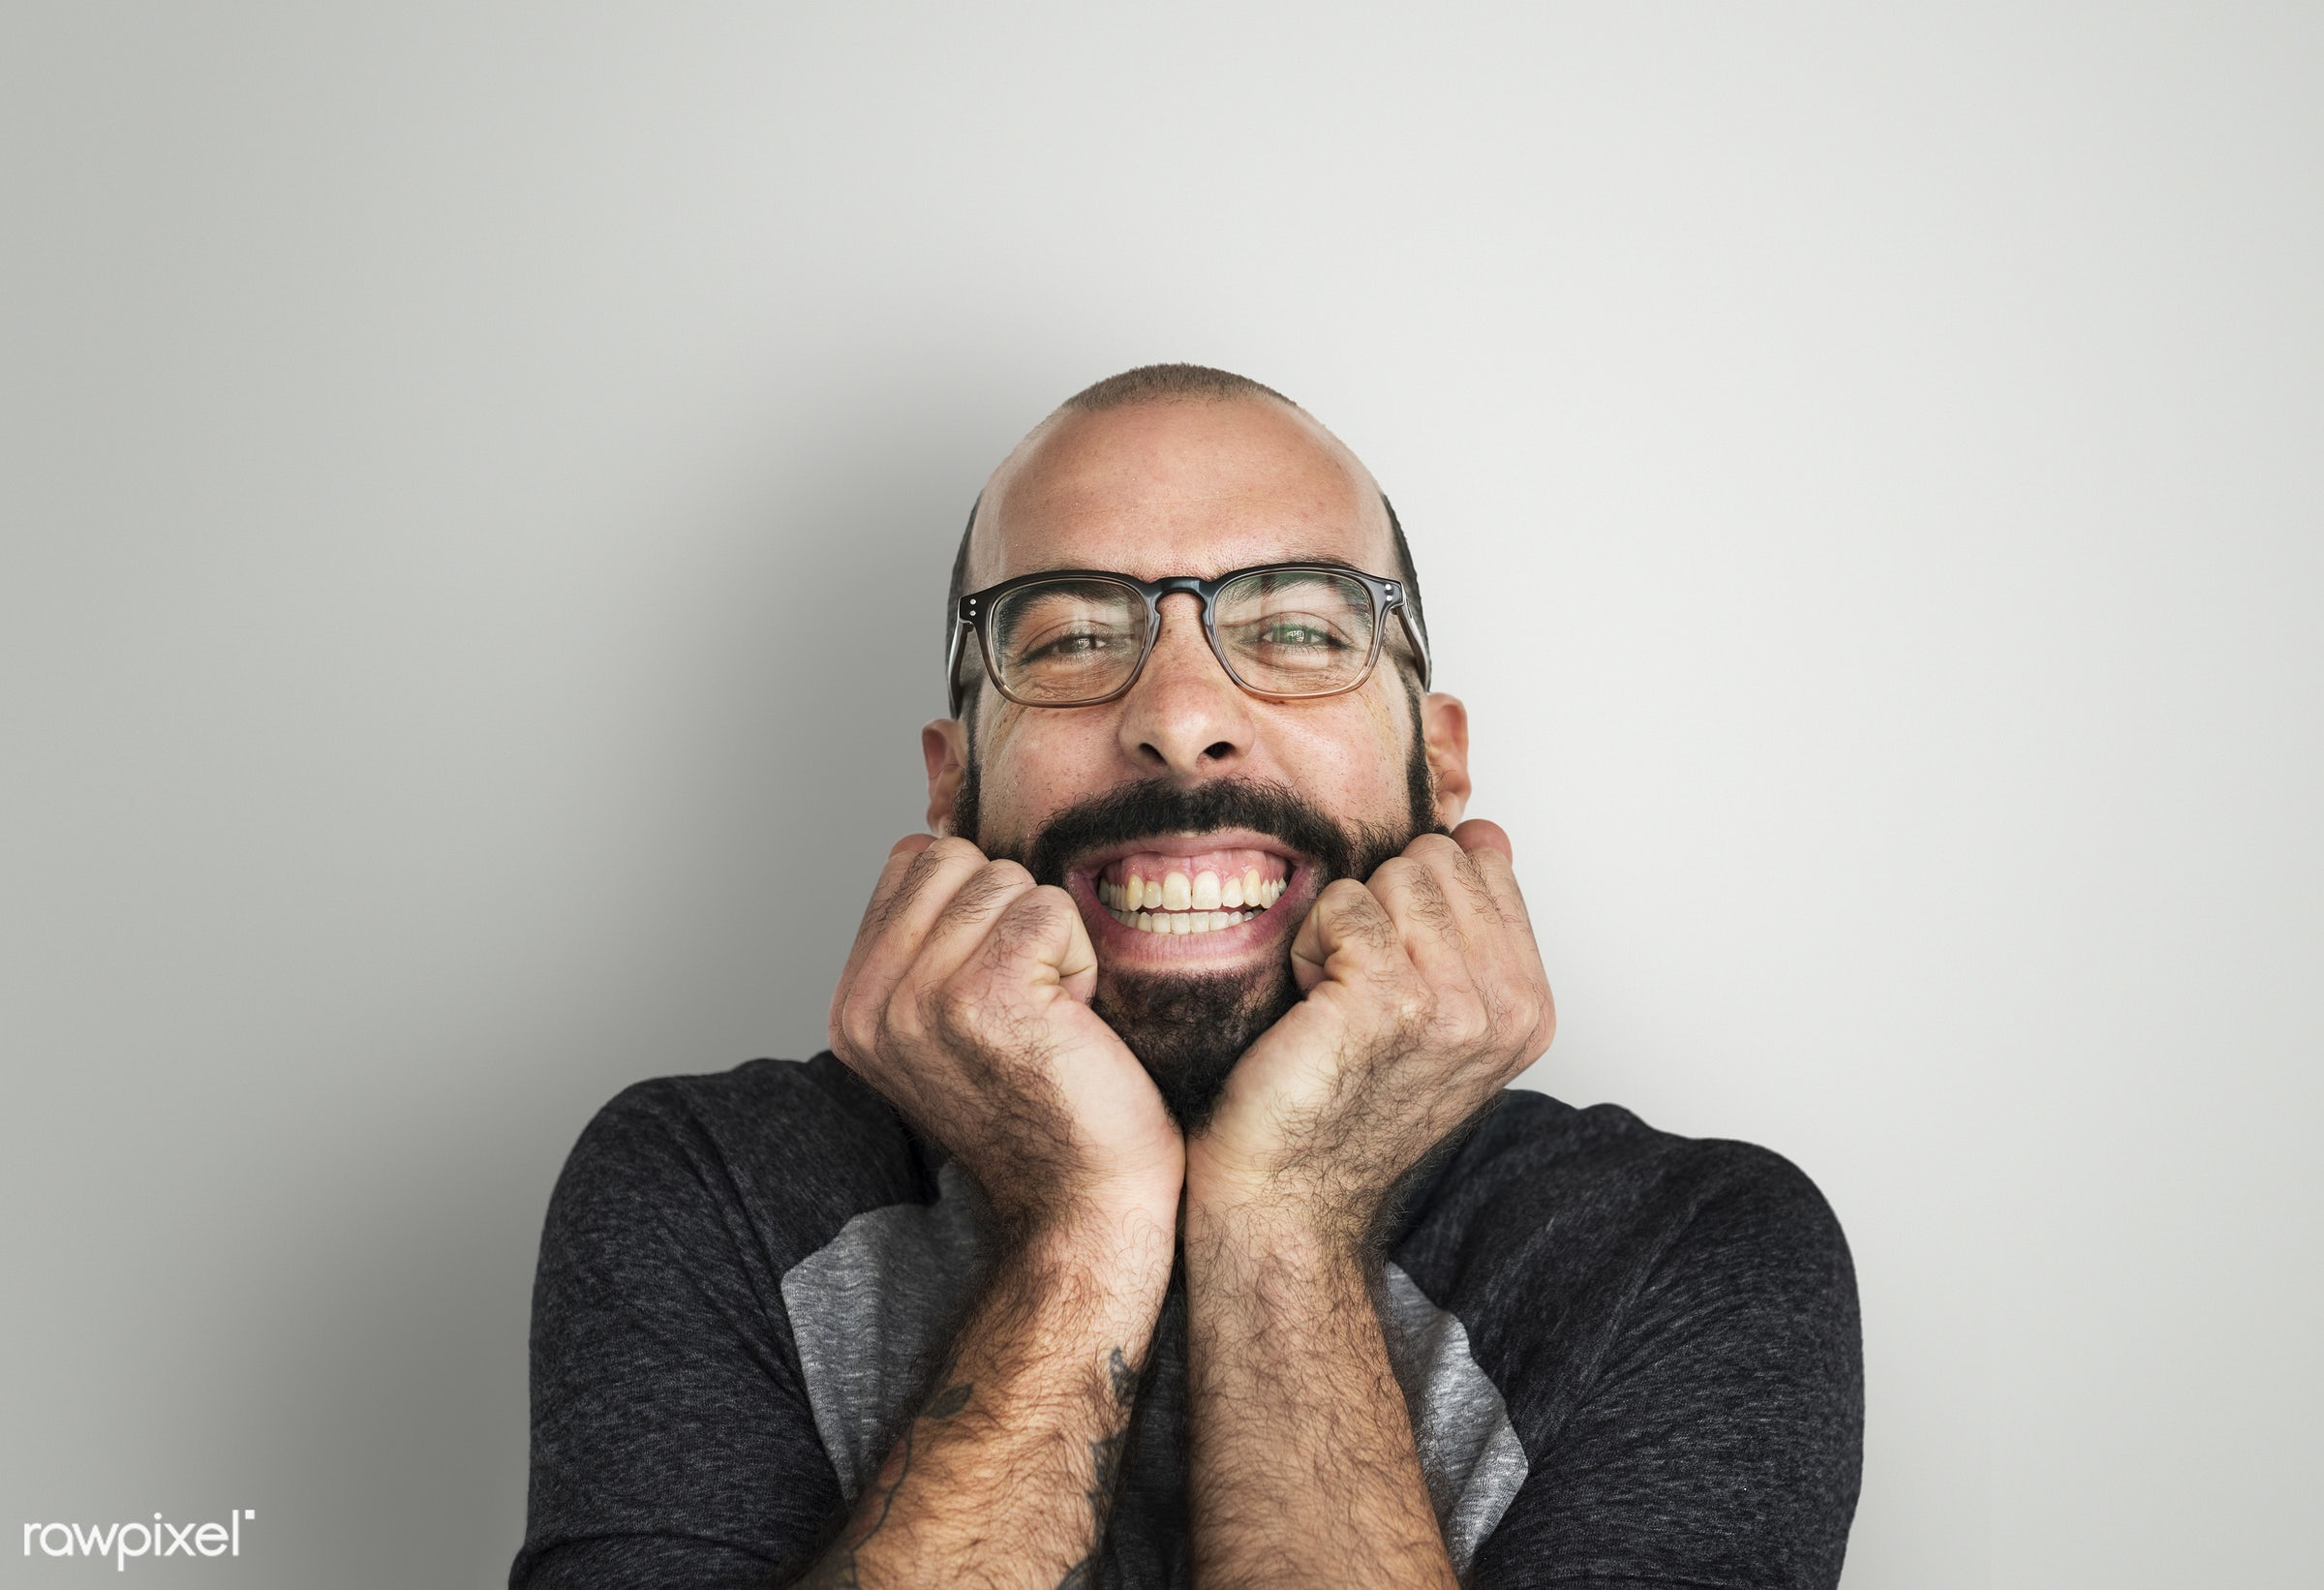 Portrait of quirky guy with beard - quirky, adult, beard, bearded, carefree, casual, cheerful, closeup, eccentric, emotional...